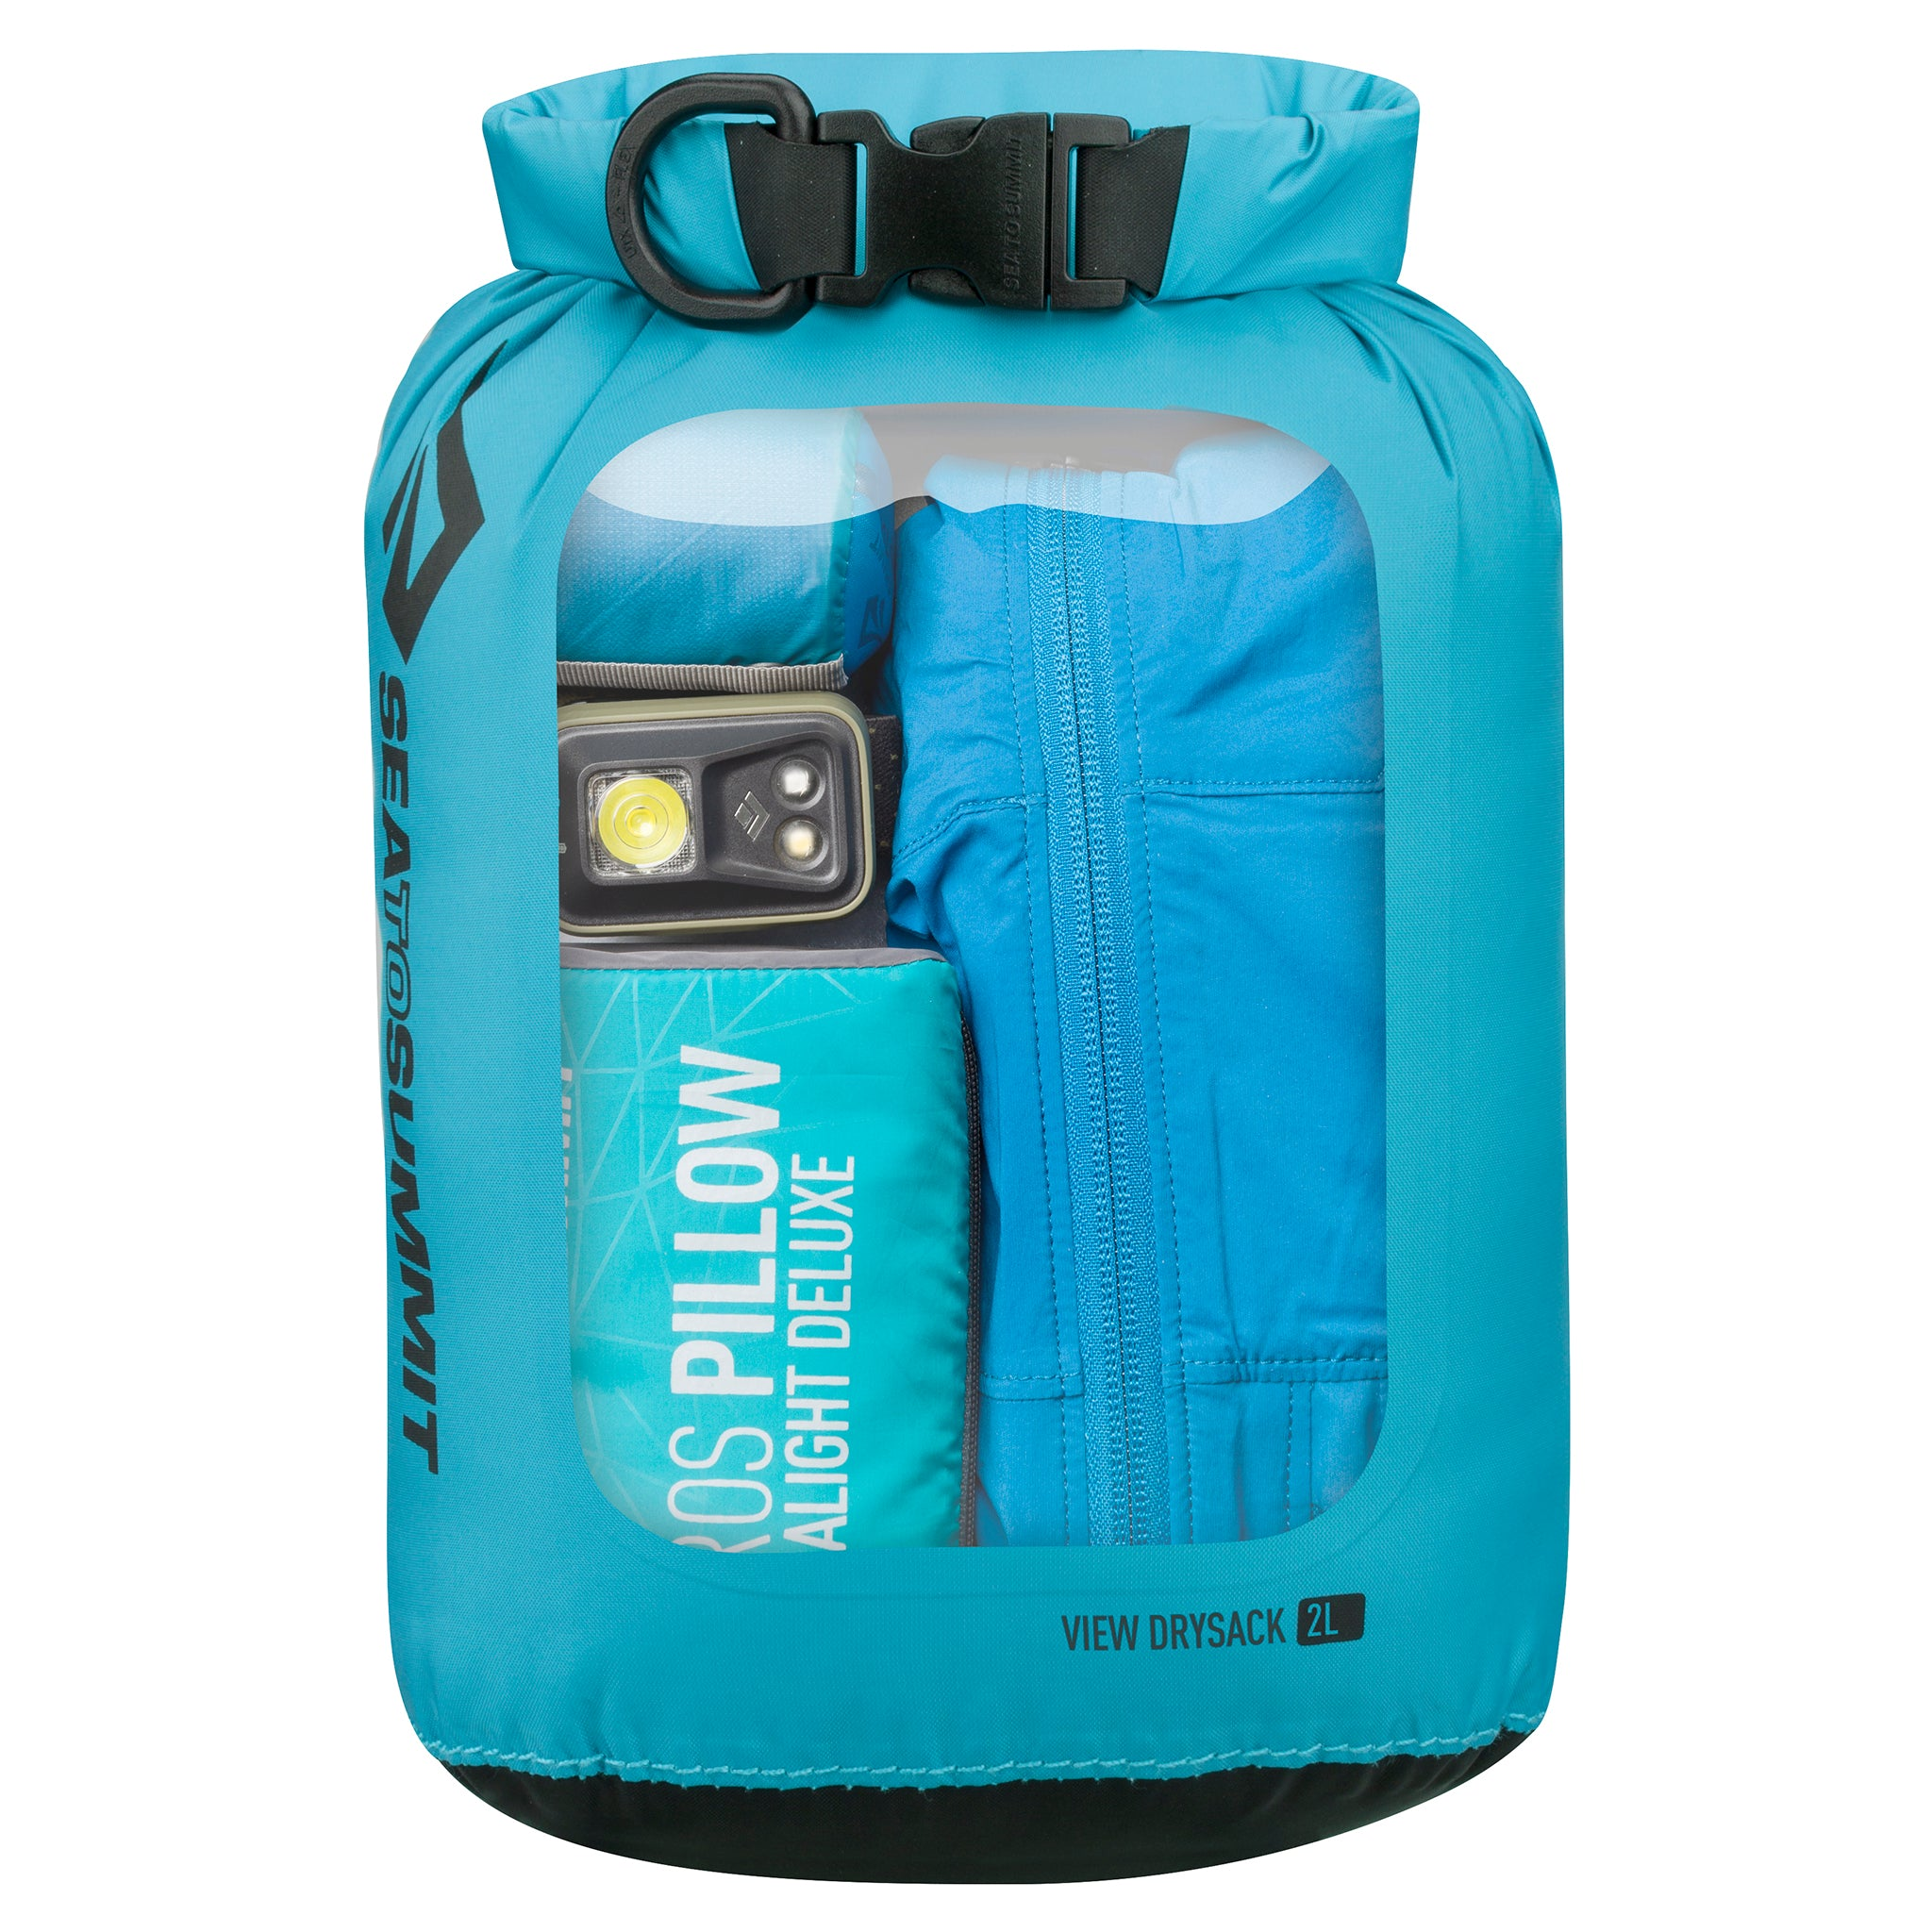 Waterproof View Lightweight Dry Bag _ window to view contents inside